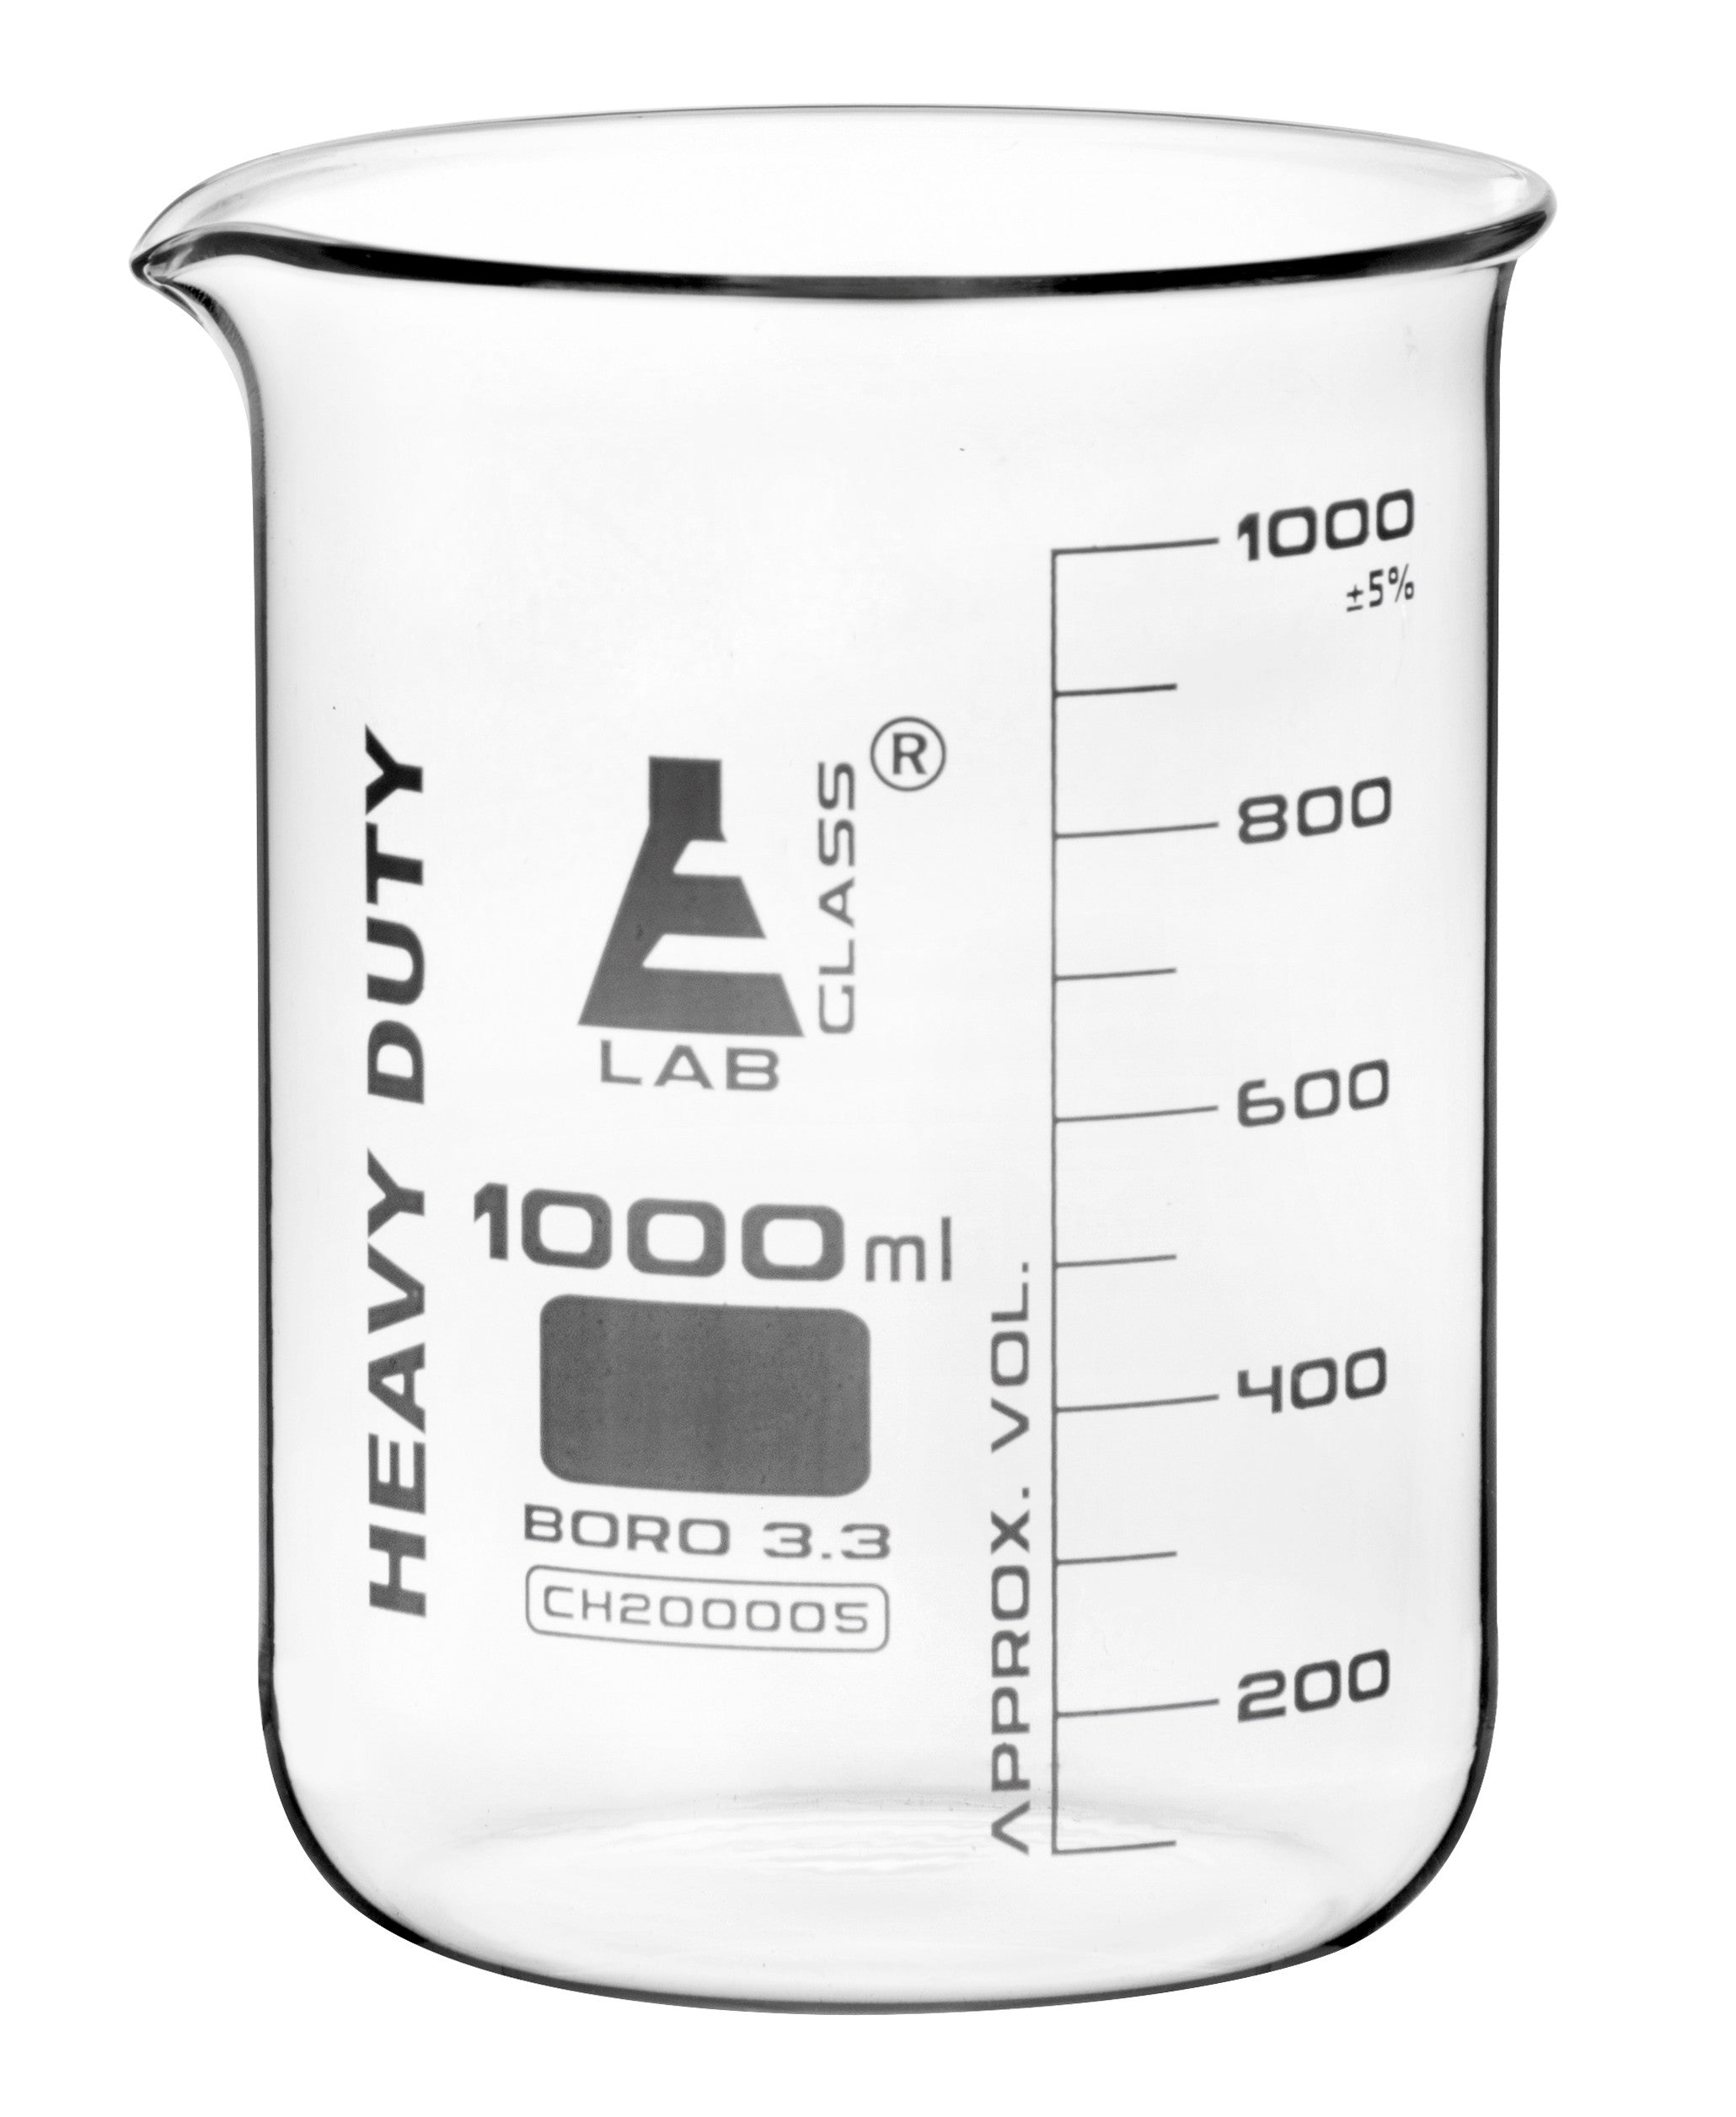 Heavy Duty Borosilicate Glass Beaker, 1000 ml, 100 ml Graduations, Short Form, Autoclavable